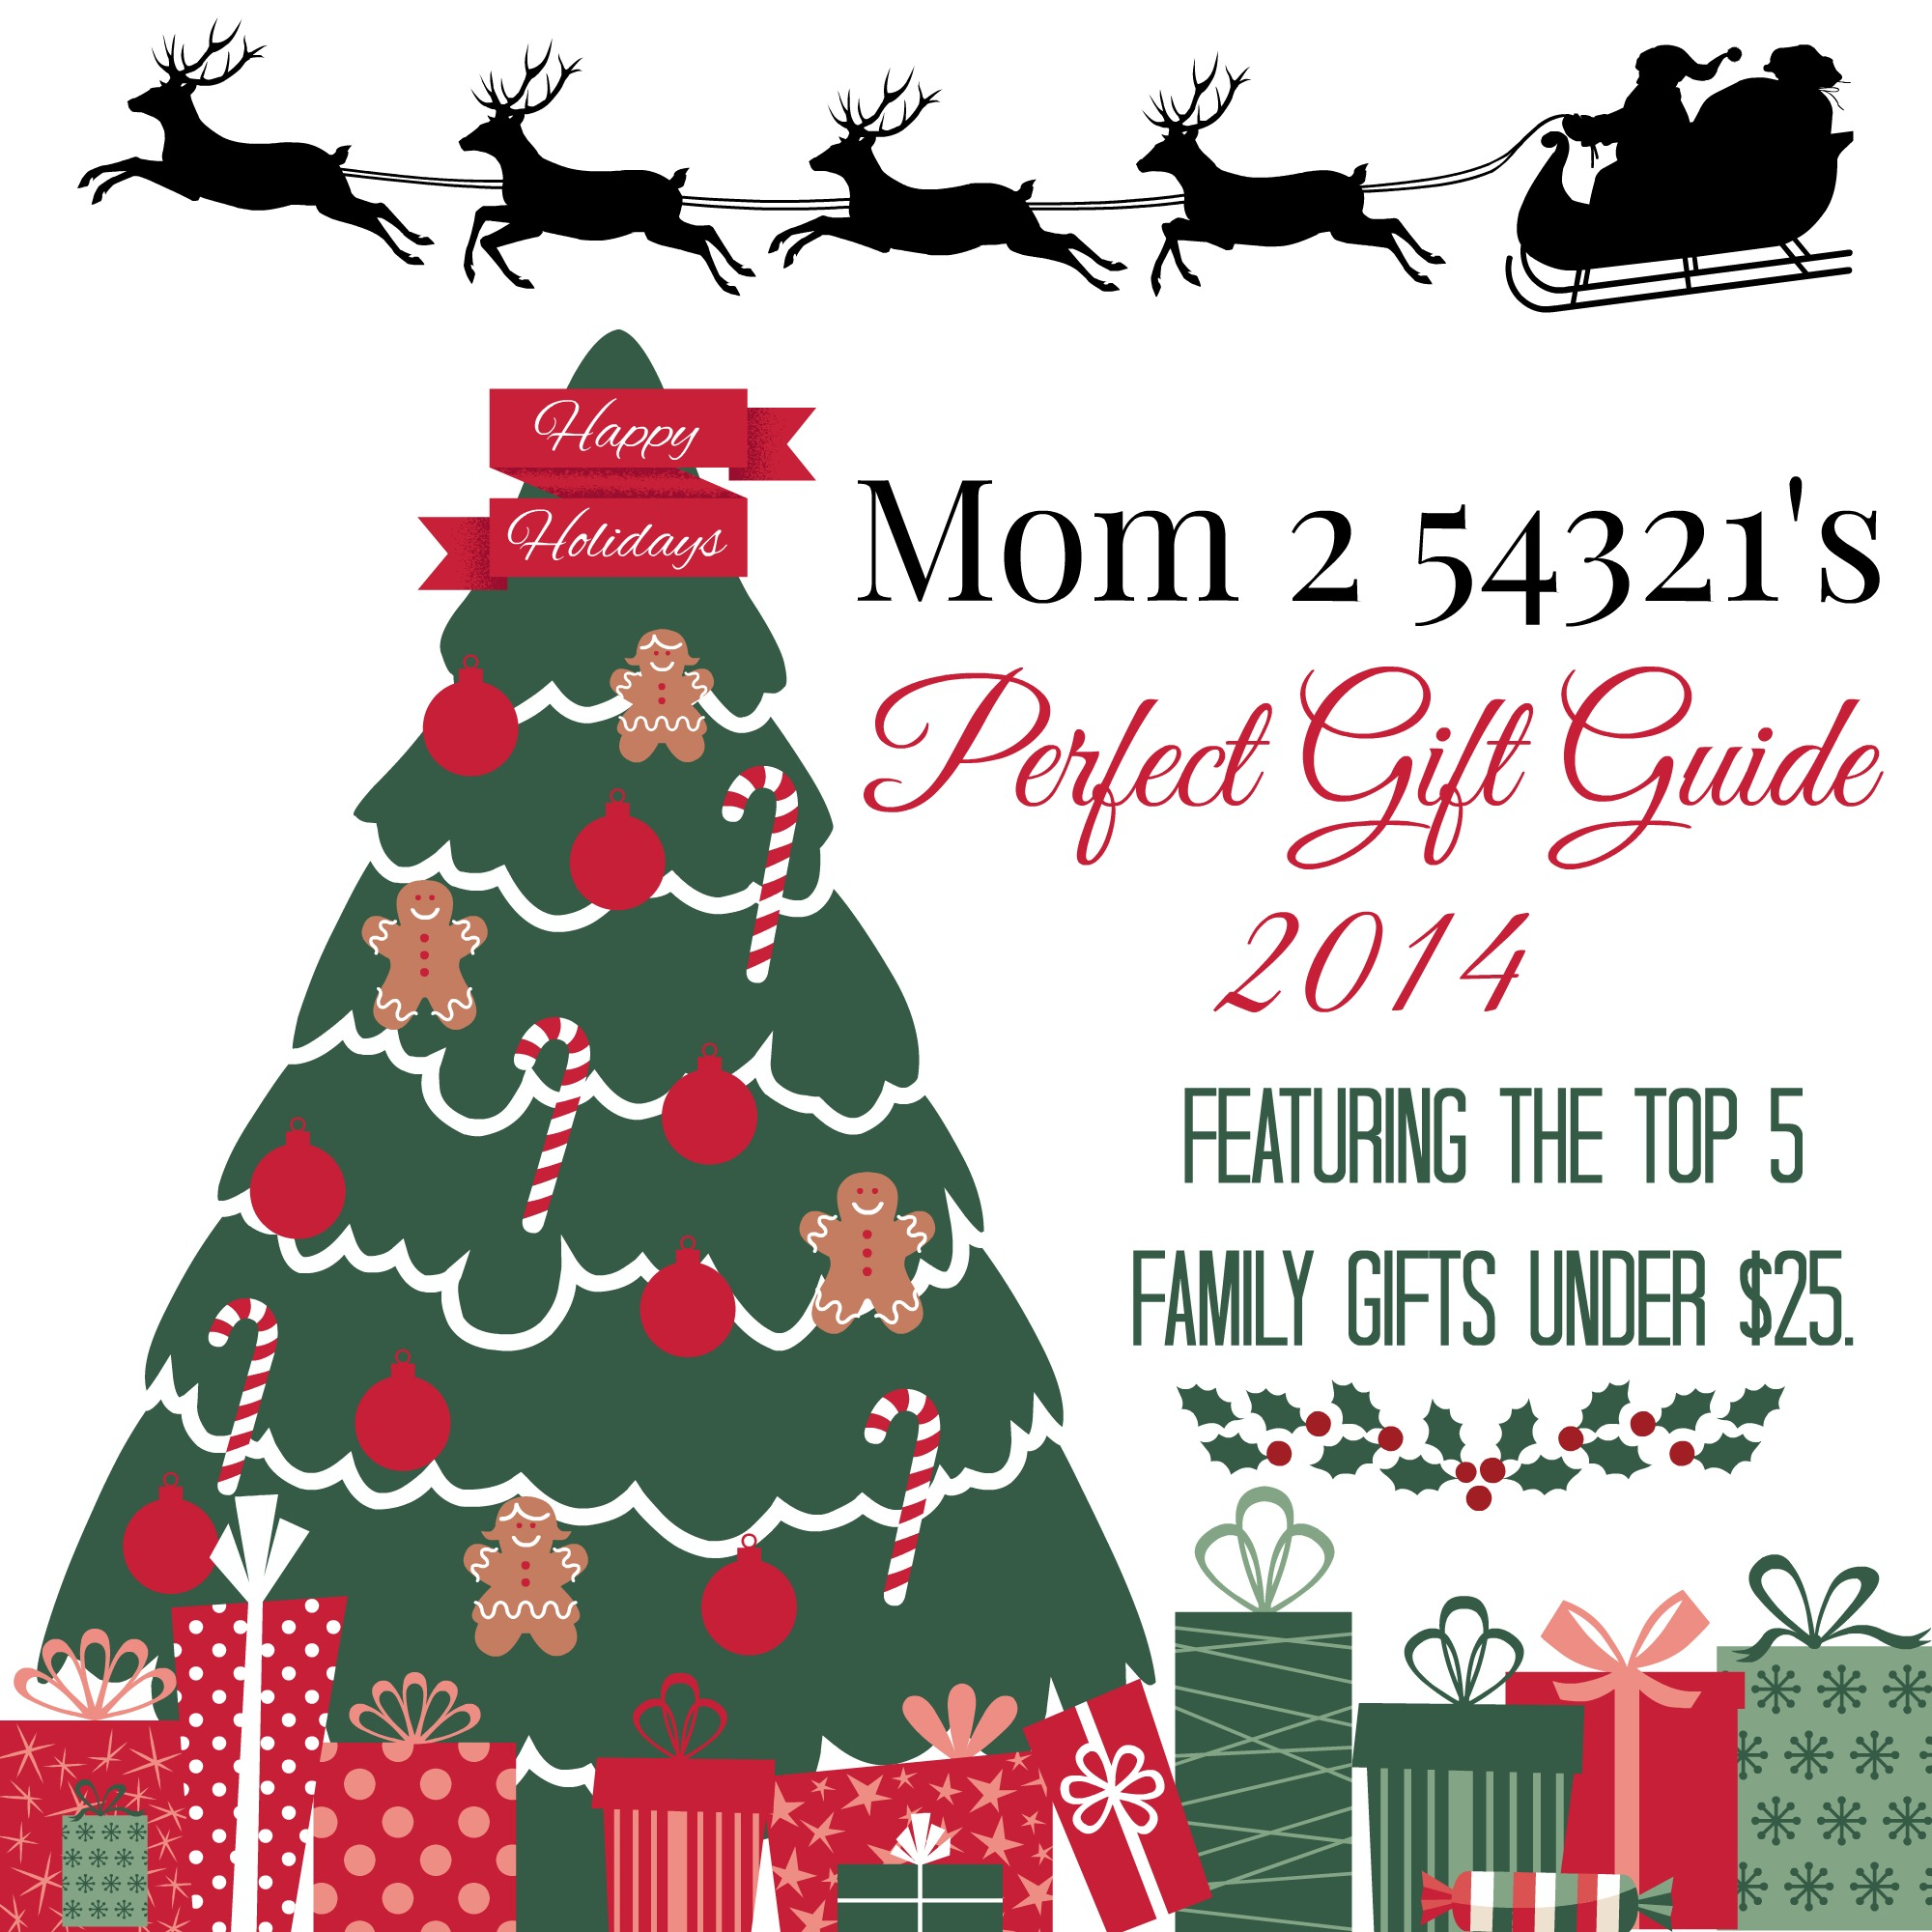 Mom 2 54321\'s Perfect Gift Guide 2014 #GiftGuide #PerfectGift – A ...